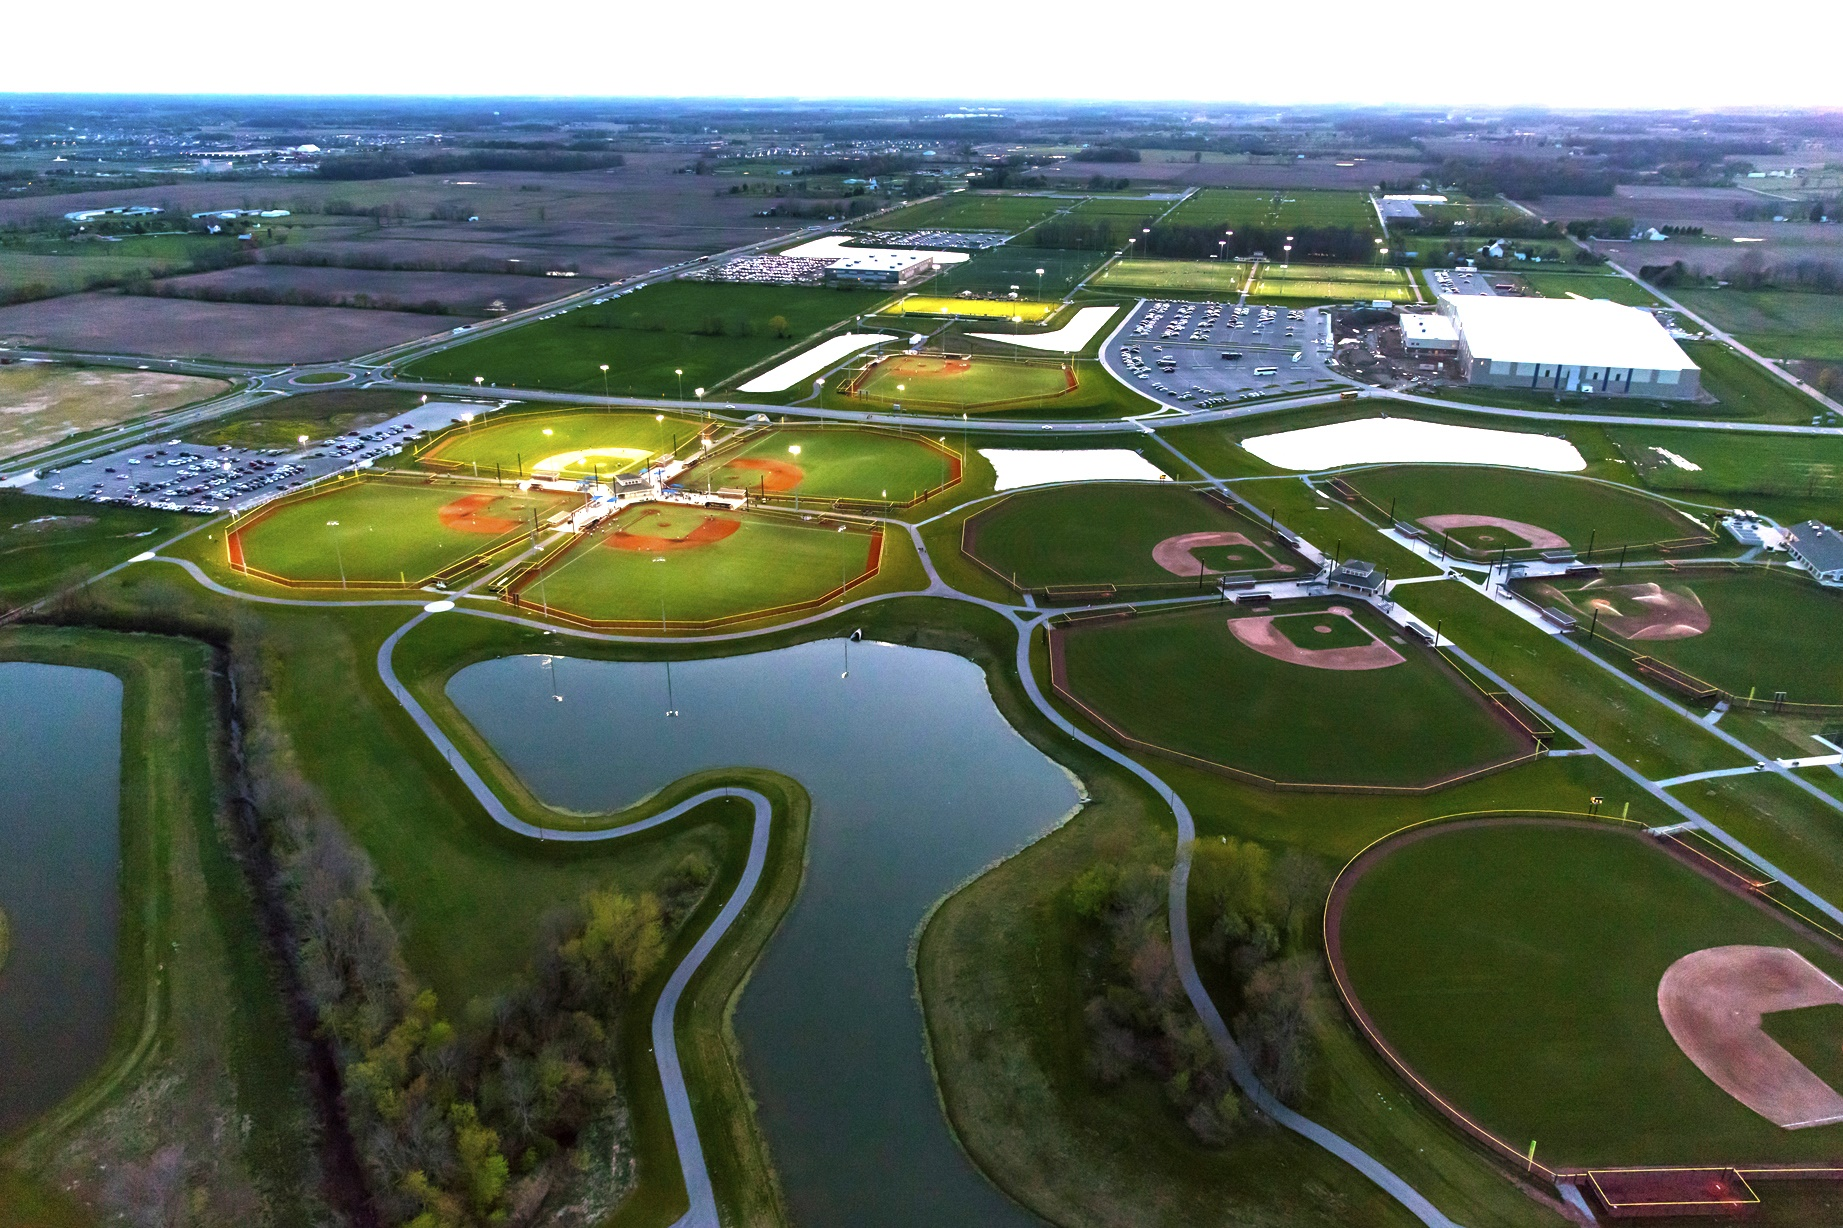 Photo for: PRESS RELEASE: Grand Park Named a Top Sports Facility in the United States